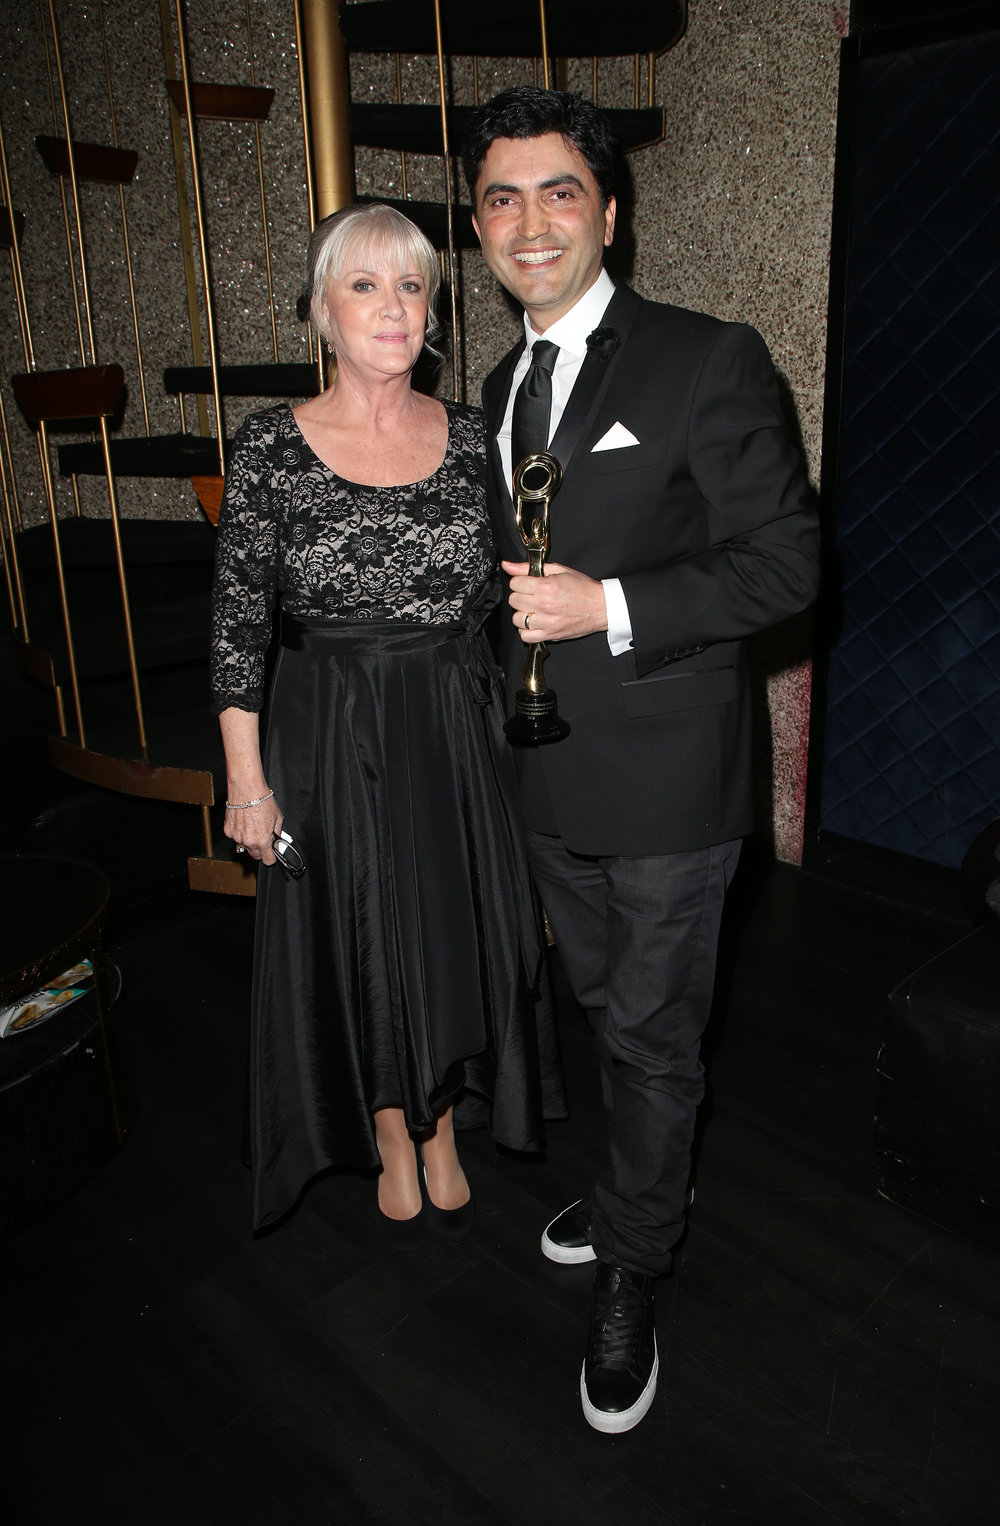 Mary Jo Buttafuoco and Dr. Babak Azizzadeh | Feb 25, 2018, Hollywood Beauty Awards held at the Avalon